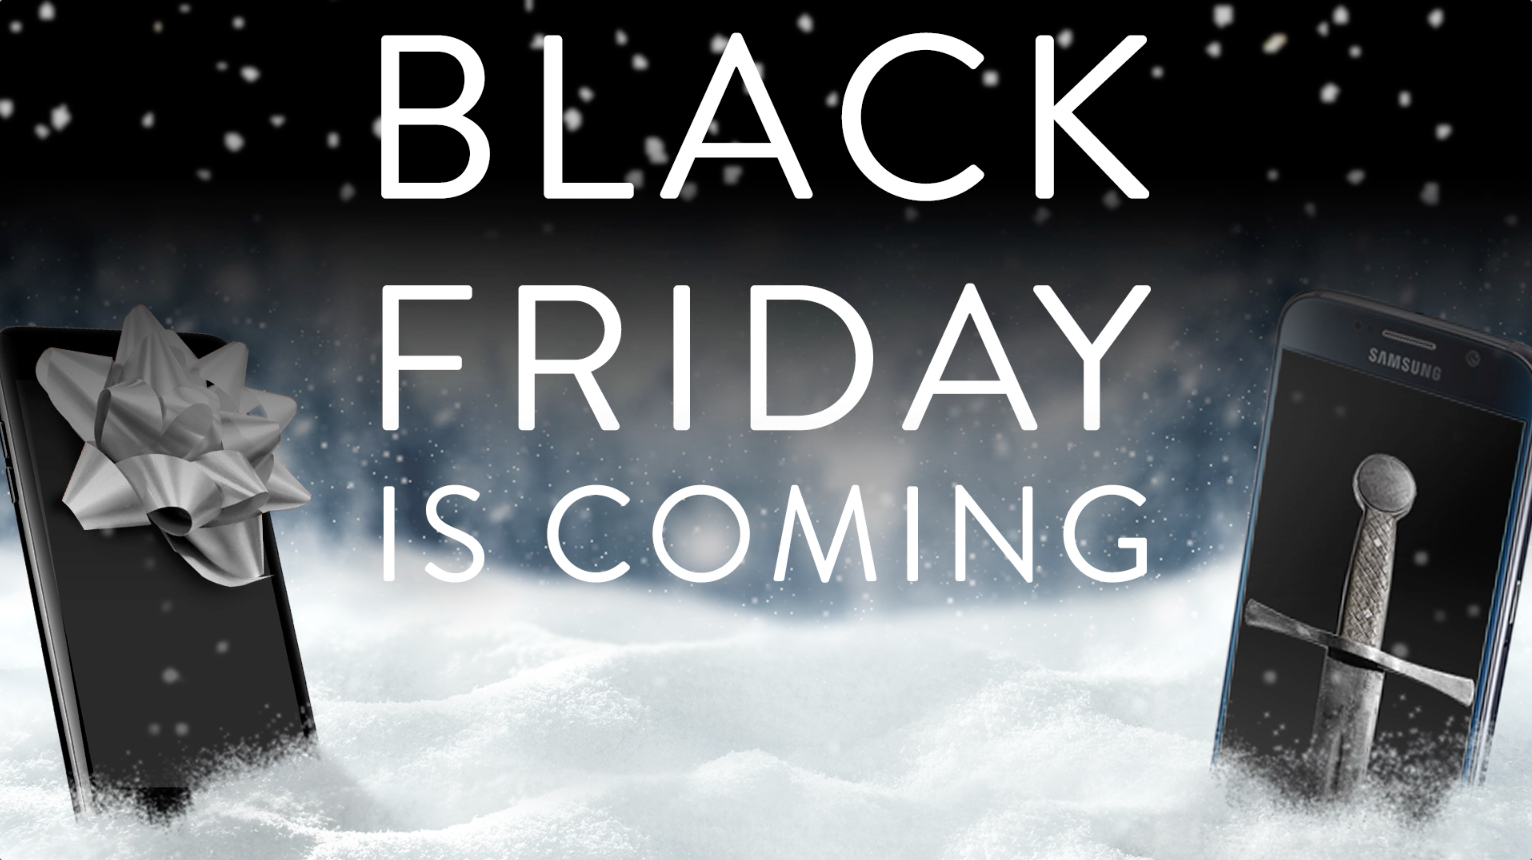 29dec1a225534 Gazelle has your back with the top Black Friday deals in tech, along with a  special, limited new discount for the ...